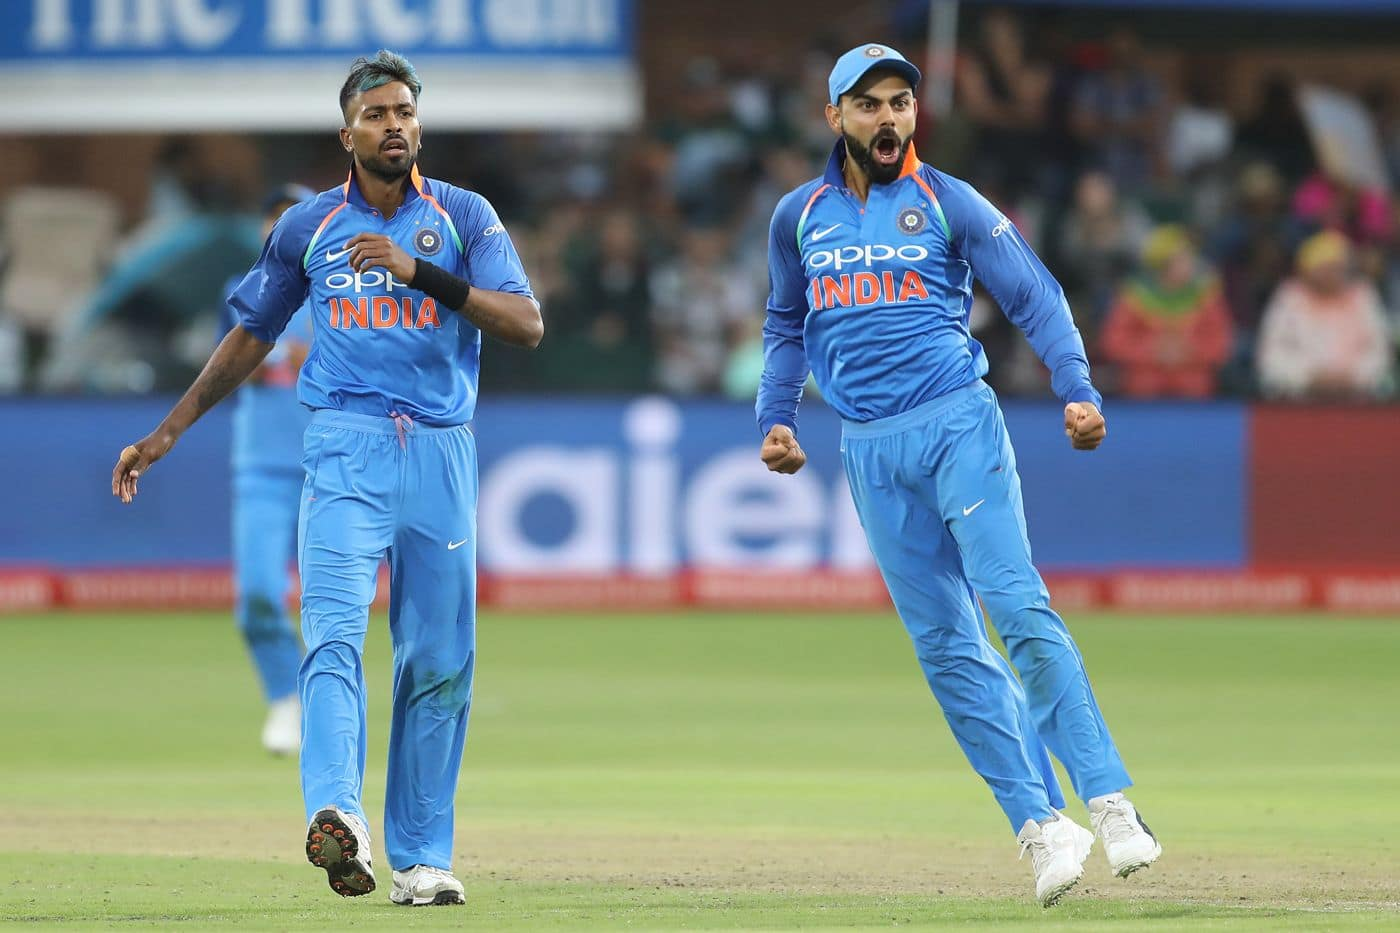 Absence of allrounder forces India to play three fast bowlers: Virat Kohli